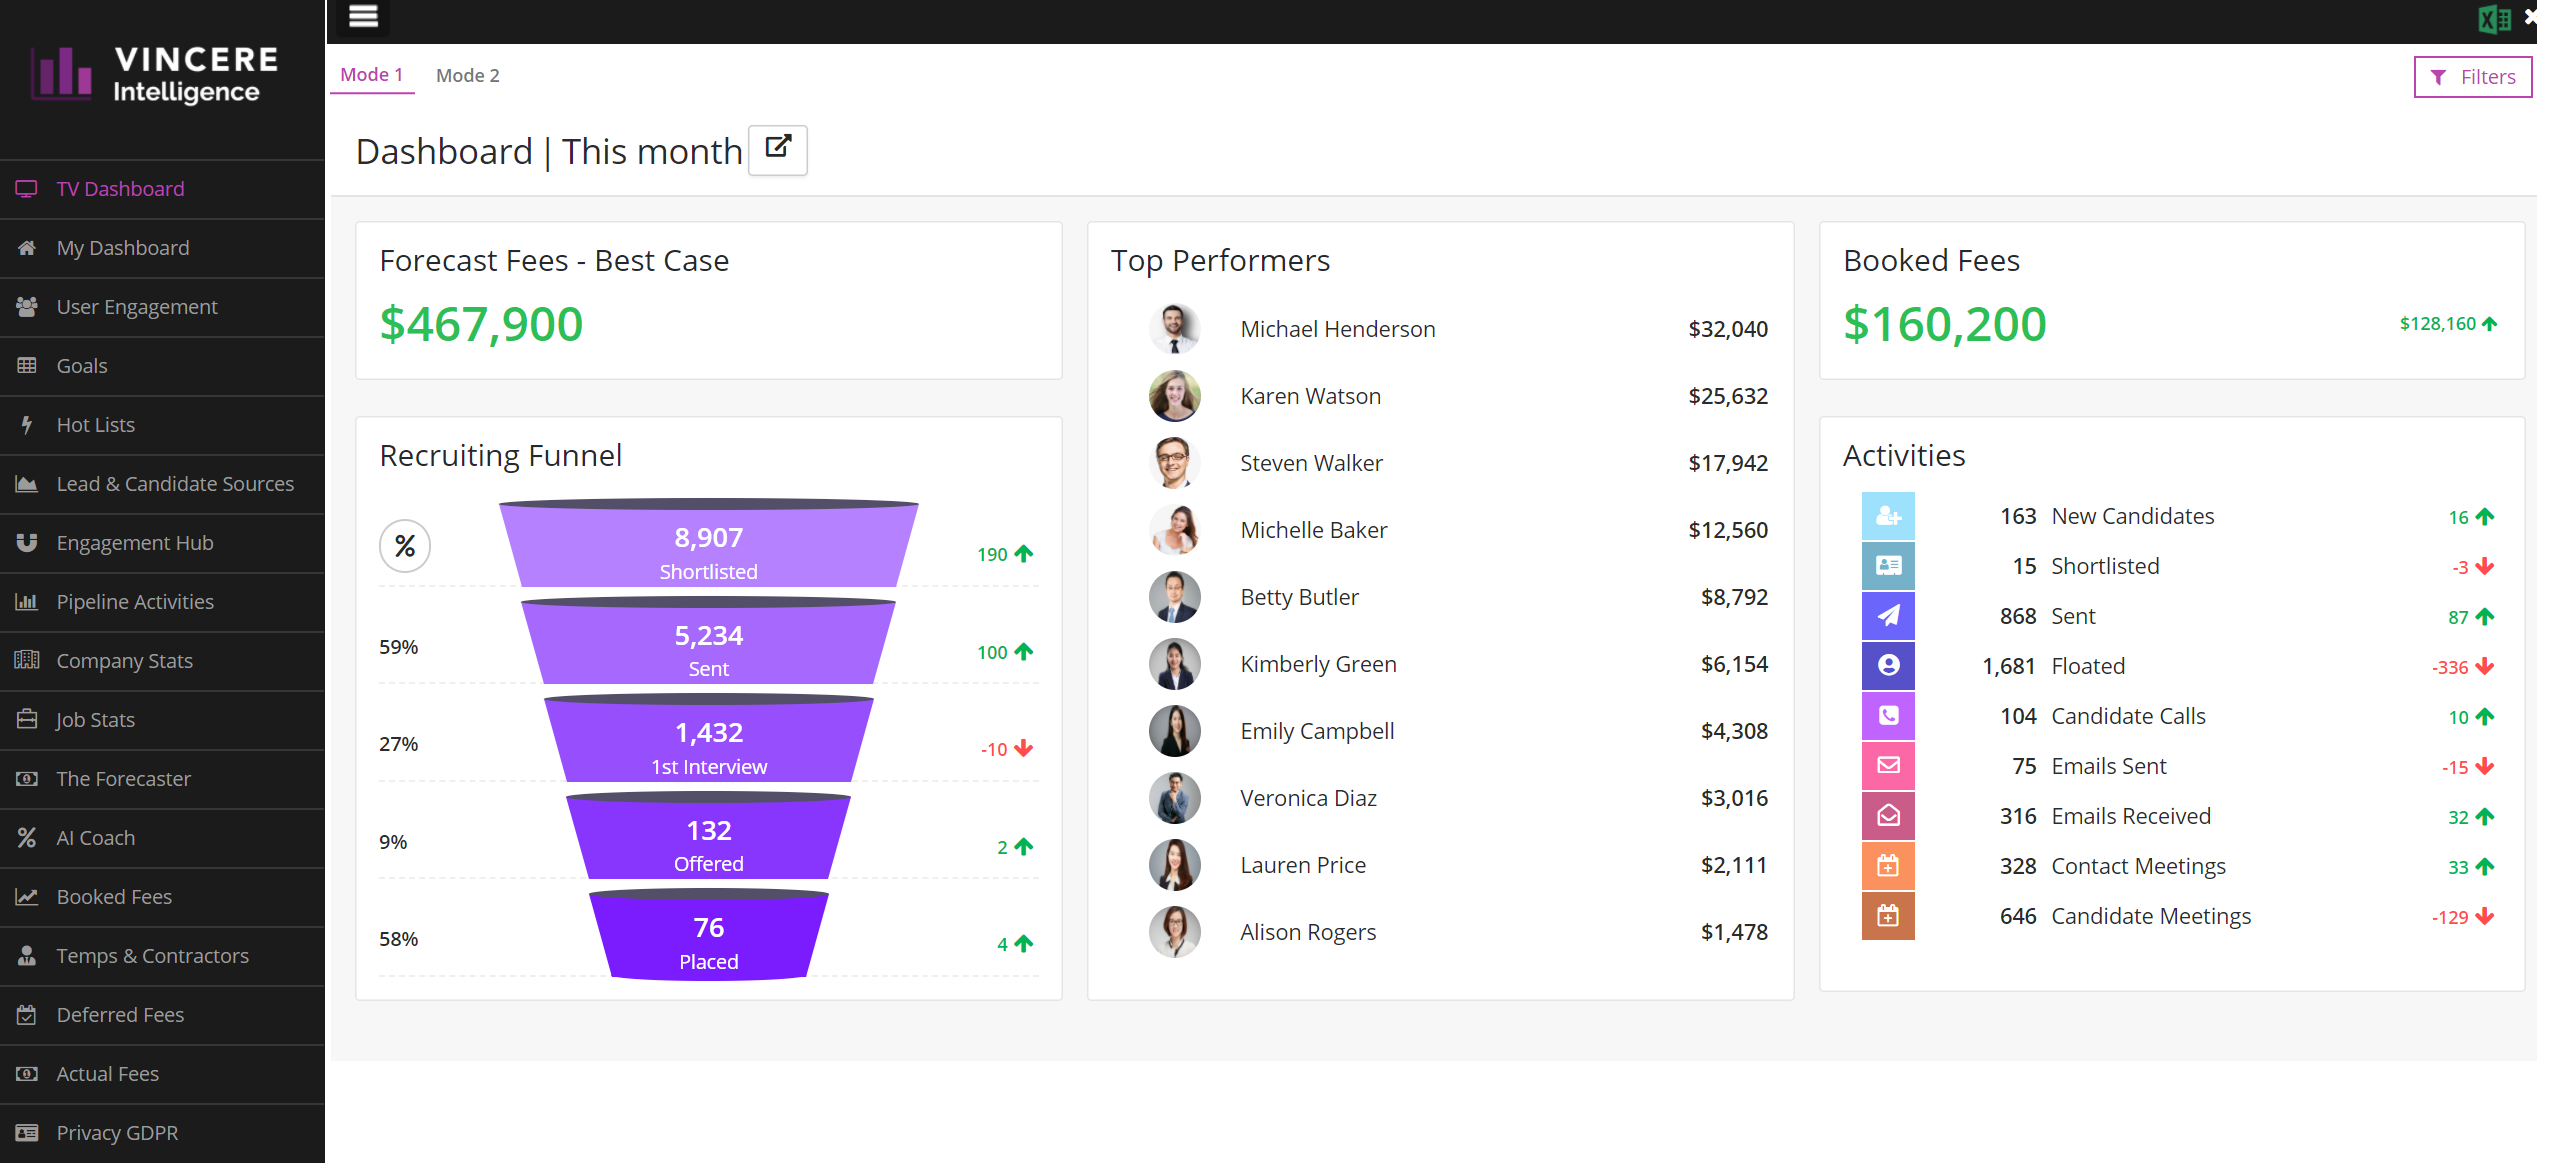 Vincere Intelligence: TV Dashboard. Your top billers on the big screen.